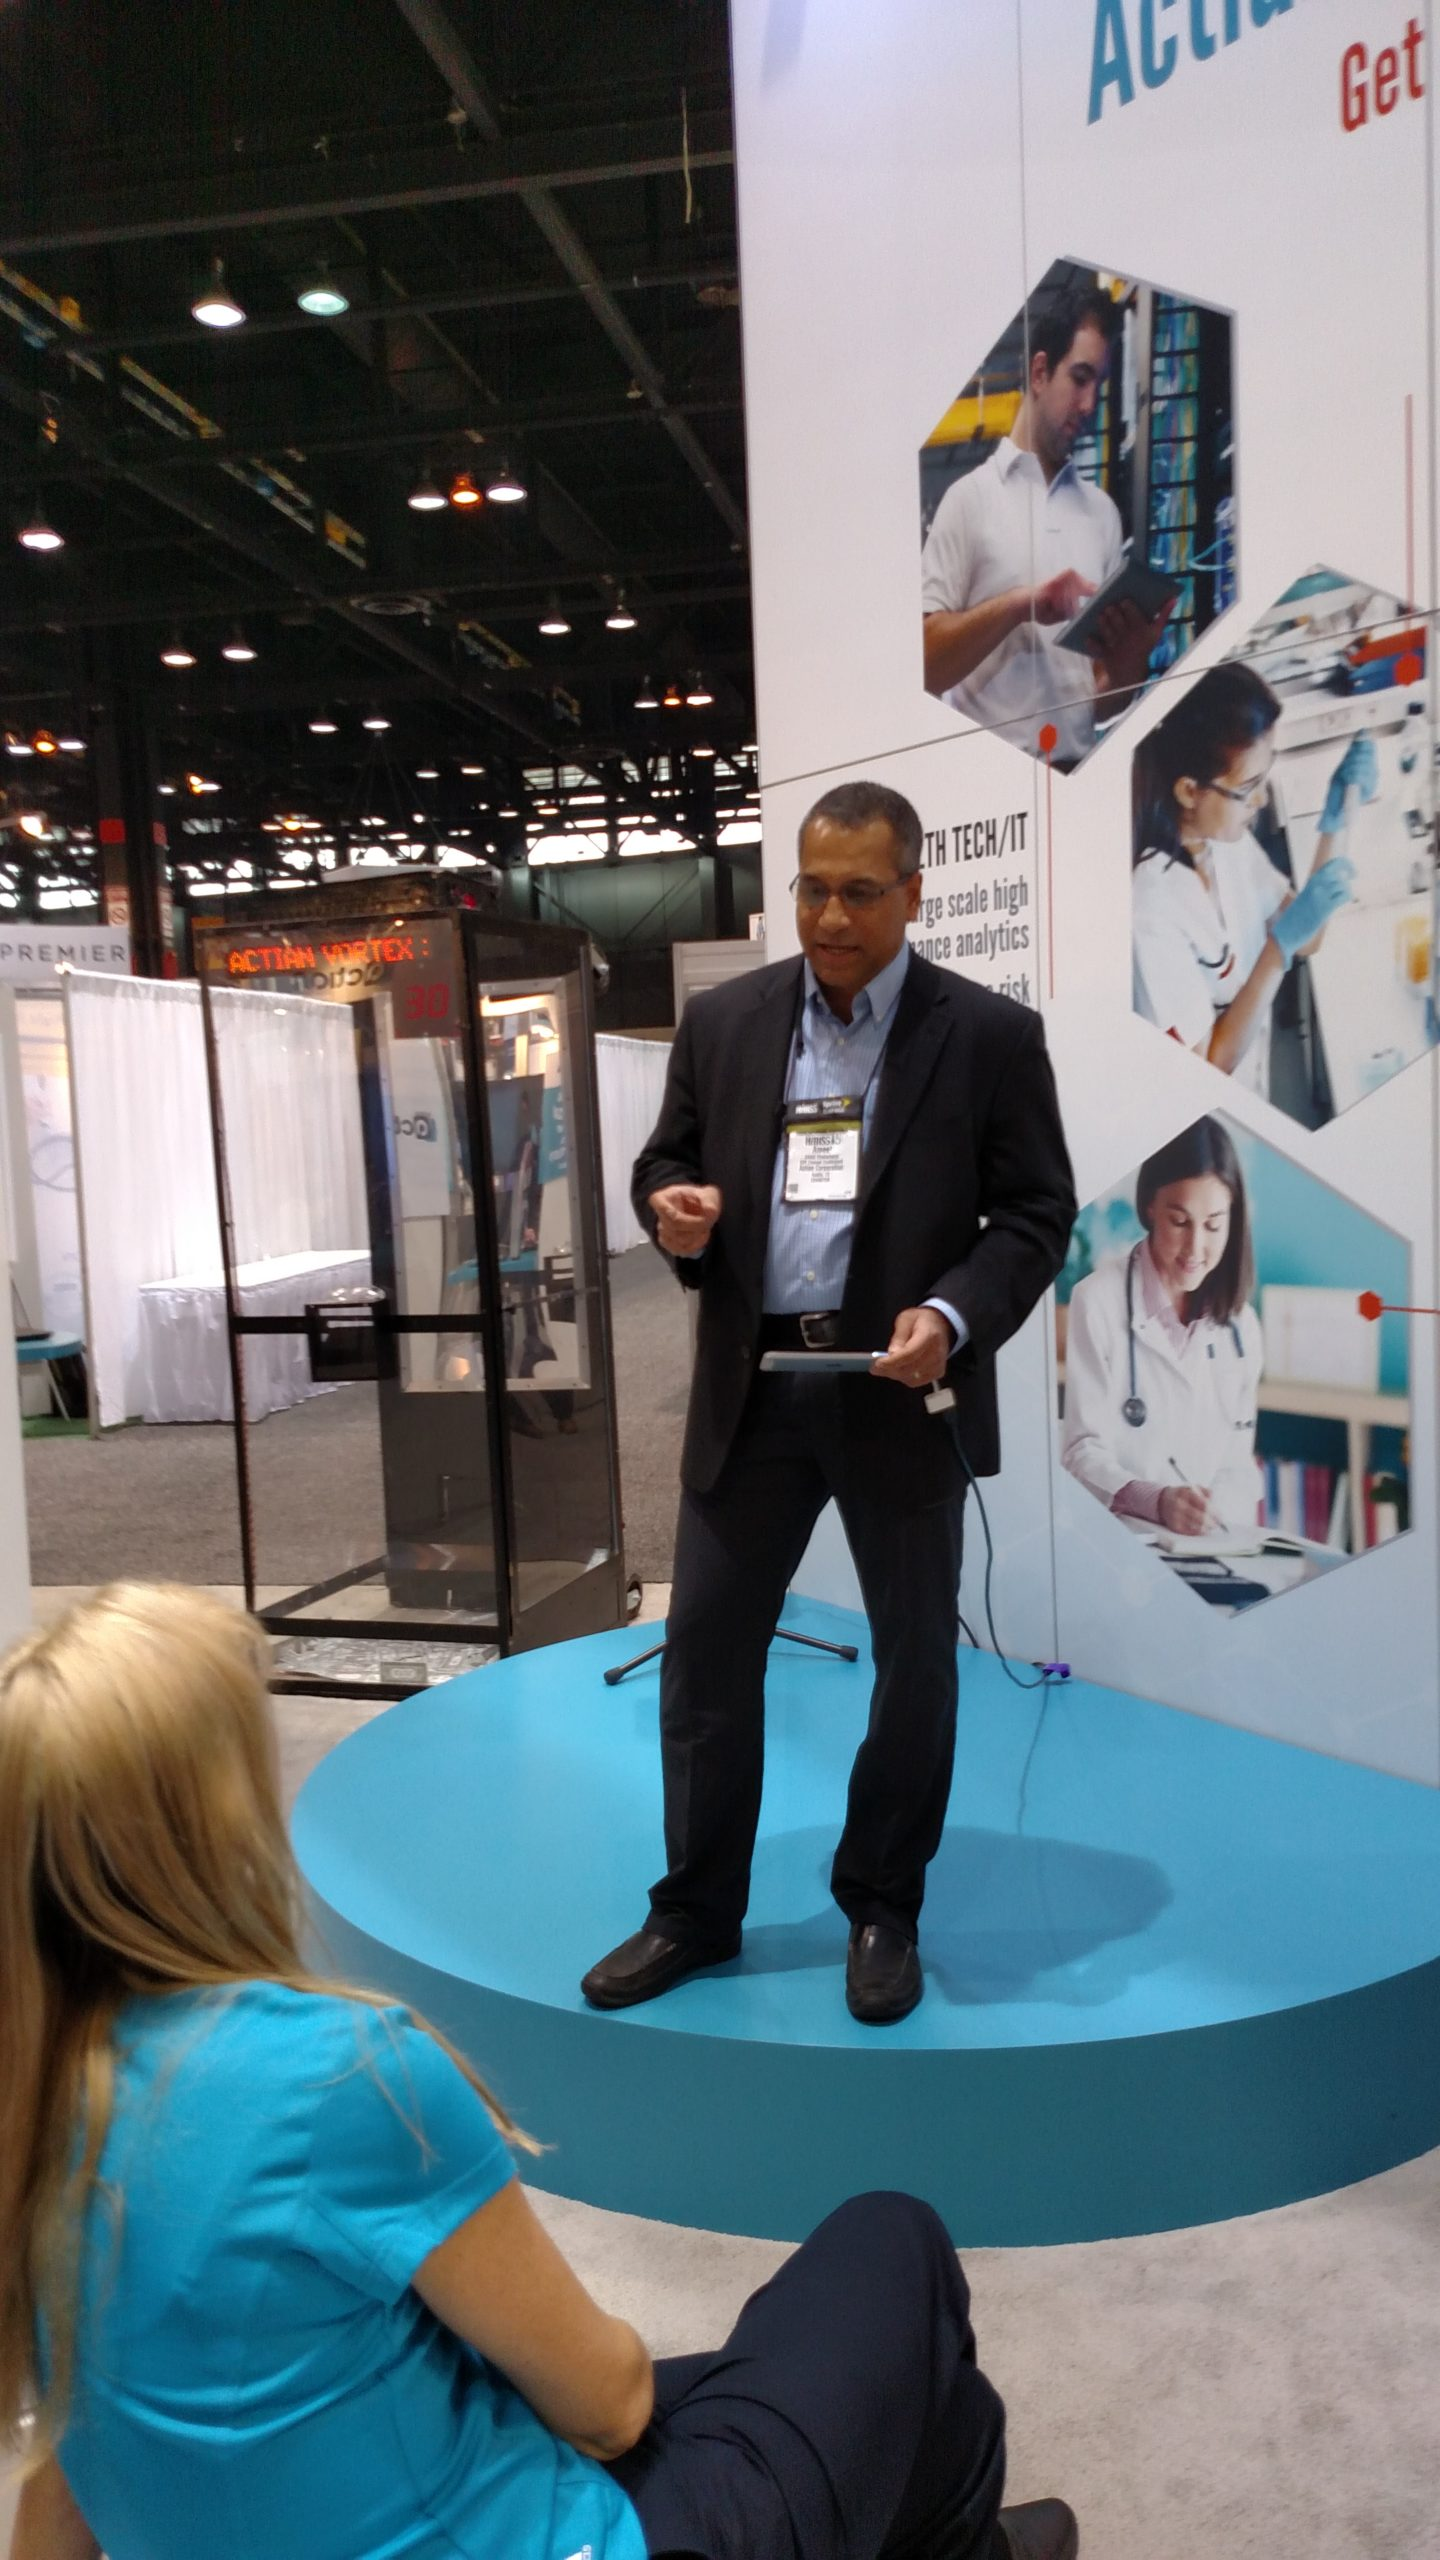 Improving Patient Care: HIMSS15 Highlights